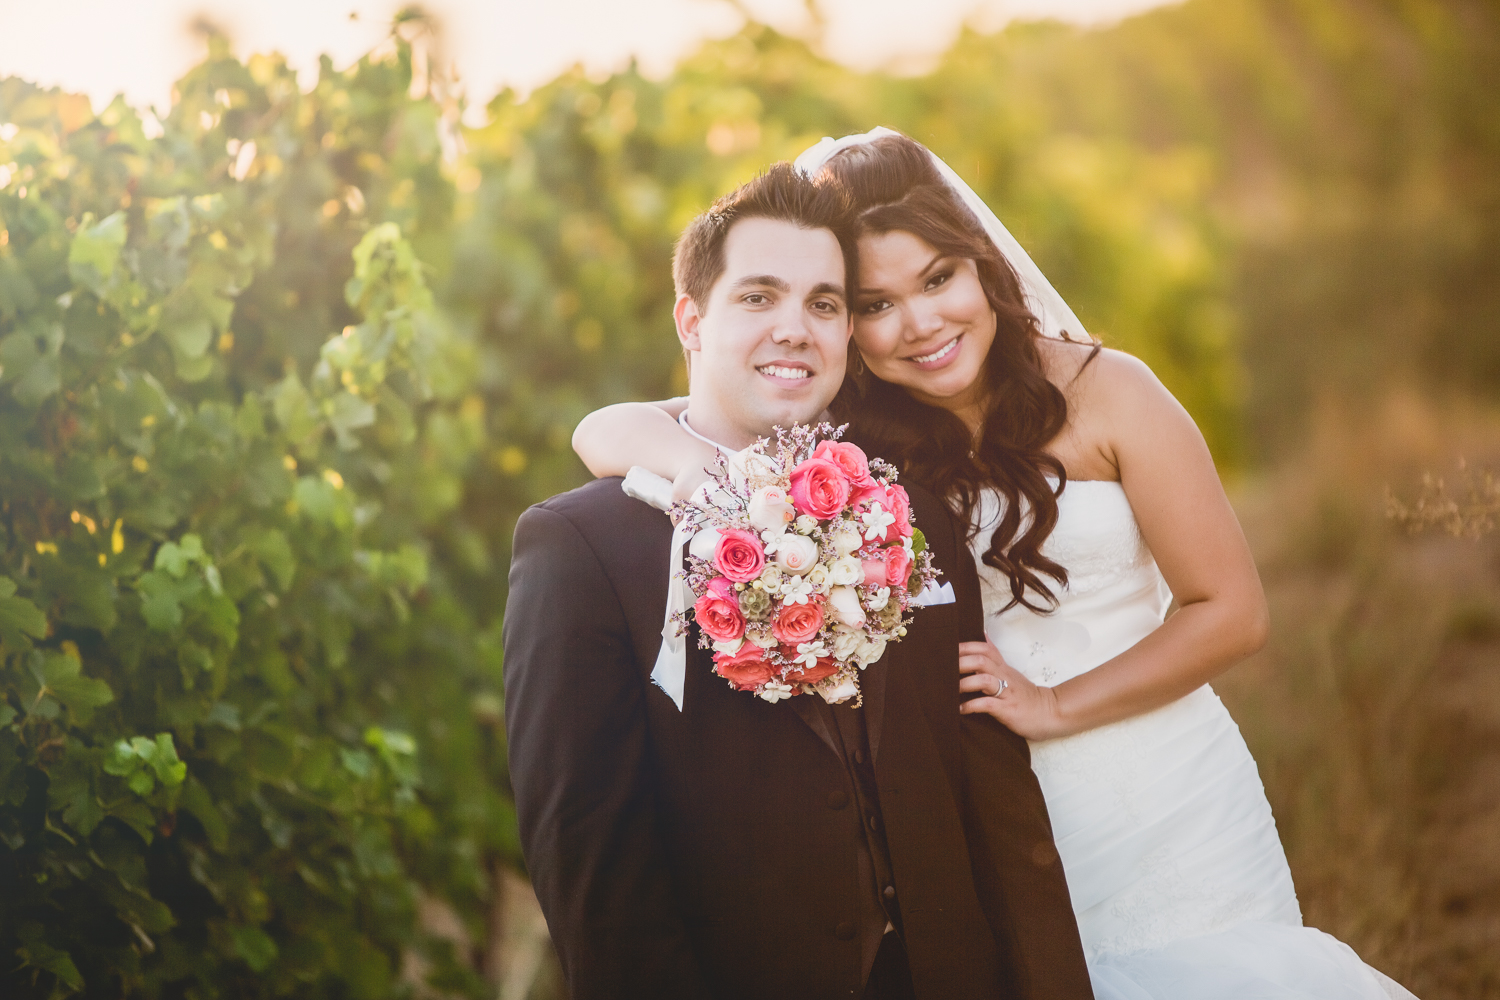 rob + jen | Falkner Winery Wedding